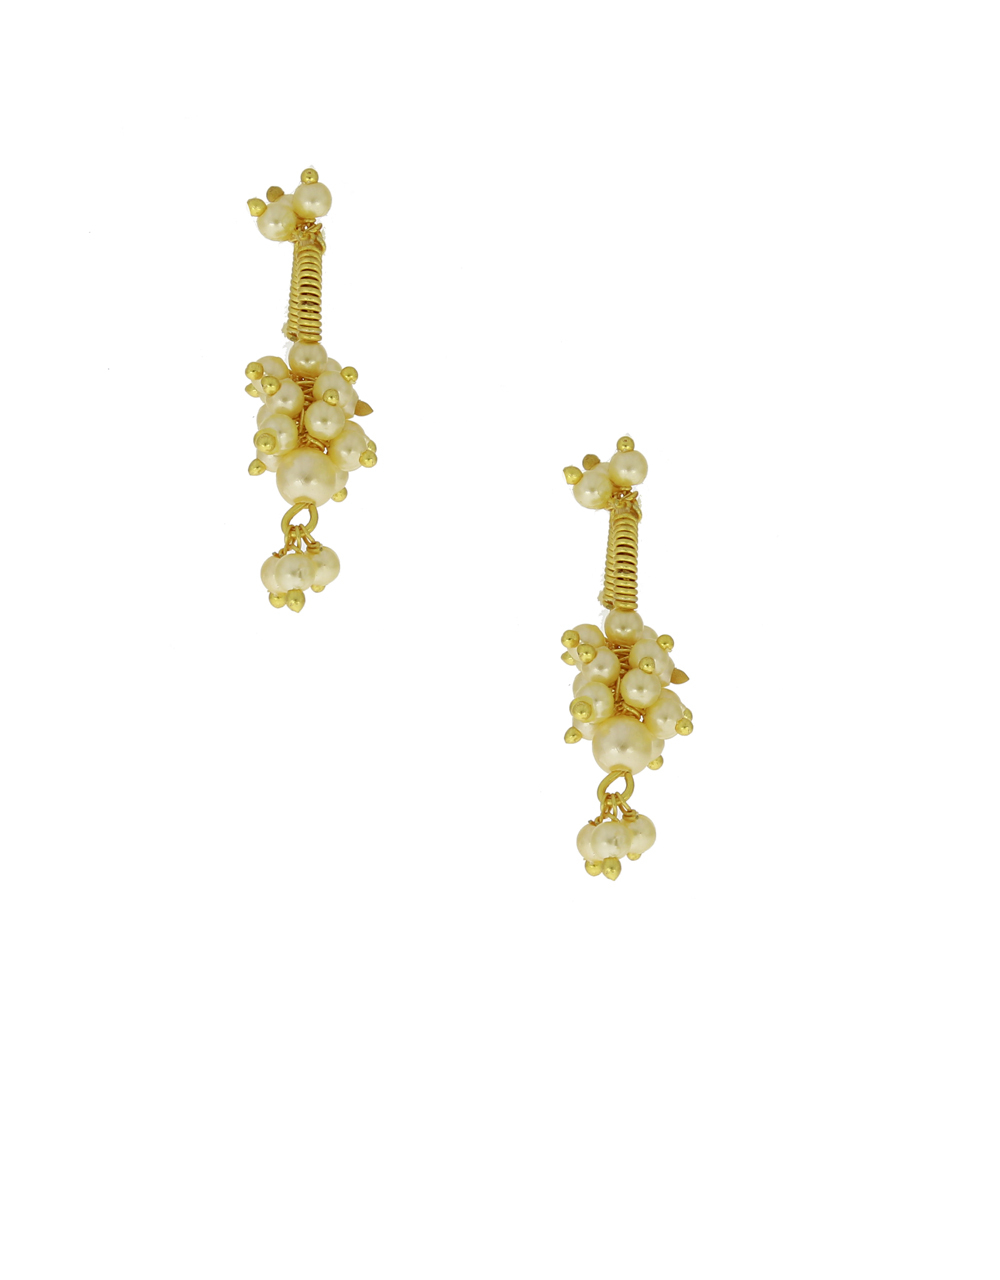 Gold Finish Pearls Beads Bugadi Earrings For Traditional Look {Clip-On Bugadi}